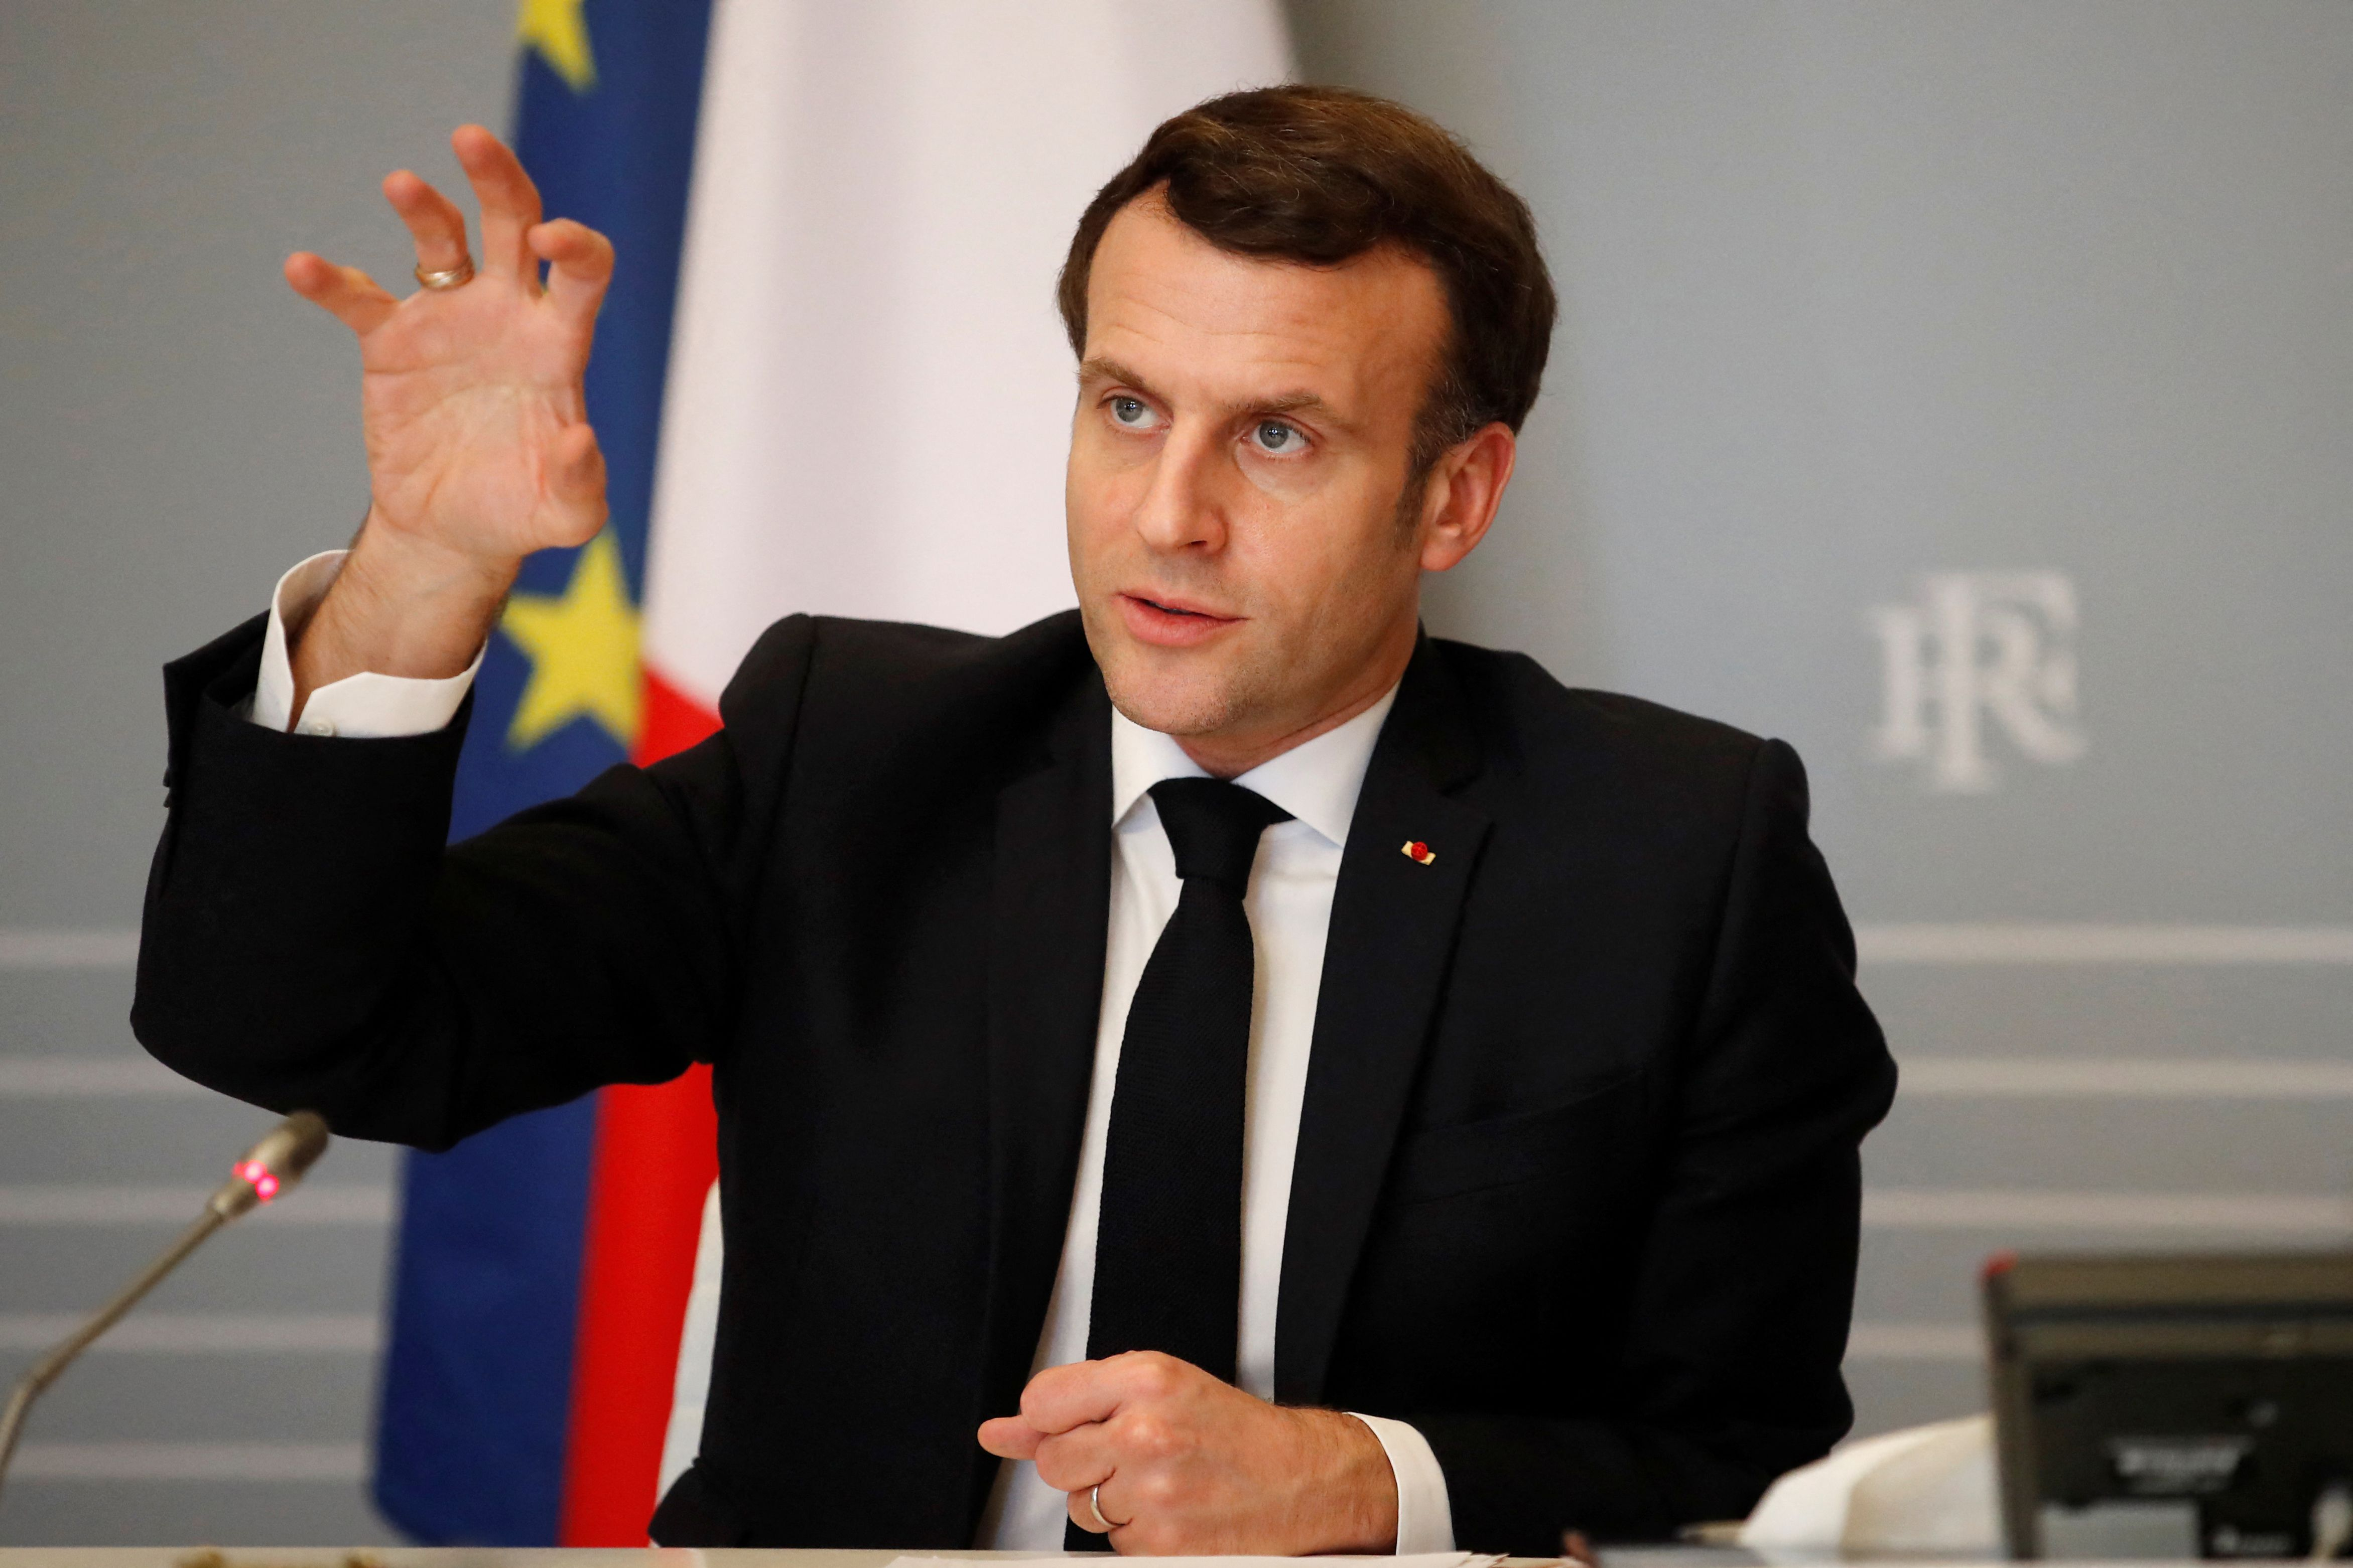 French president Emmanuel Macron claimed the Oxford vaccine 'doesn't work' on the over 65s